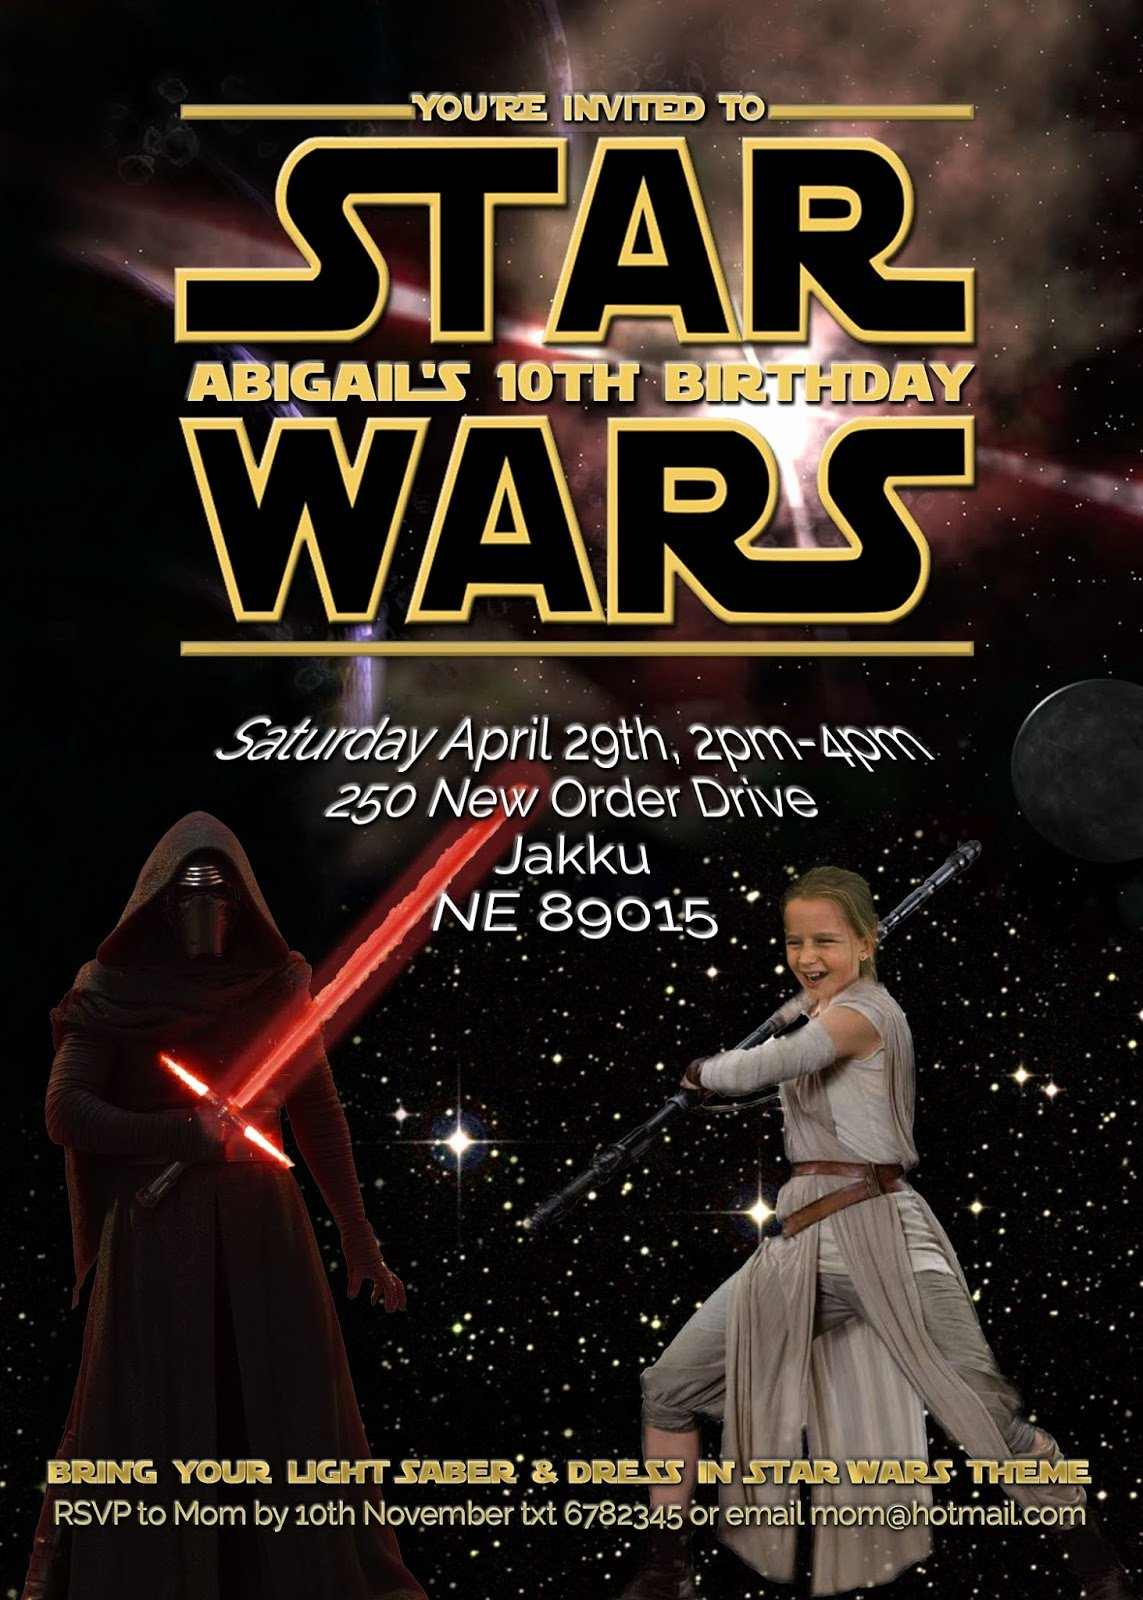 Star Wars Party Invitations Beautiful Free Kids Party Invitations Star Wars Party Invitation Self Edit